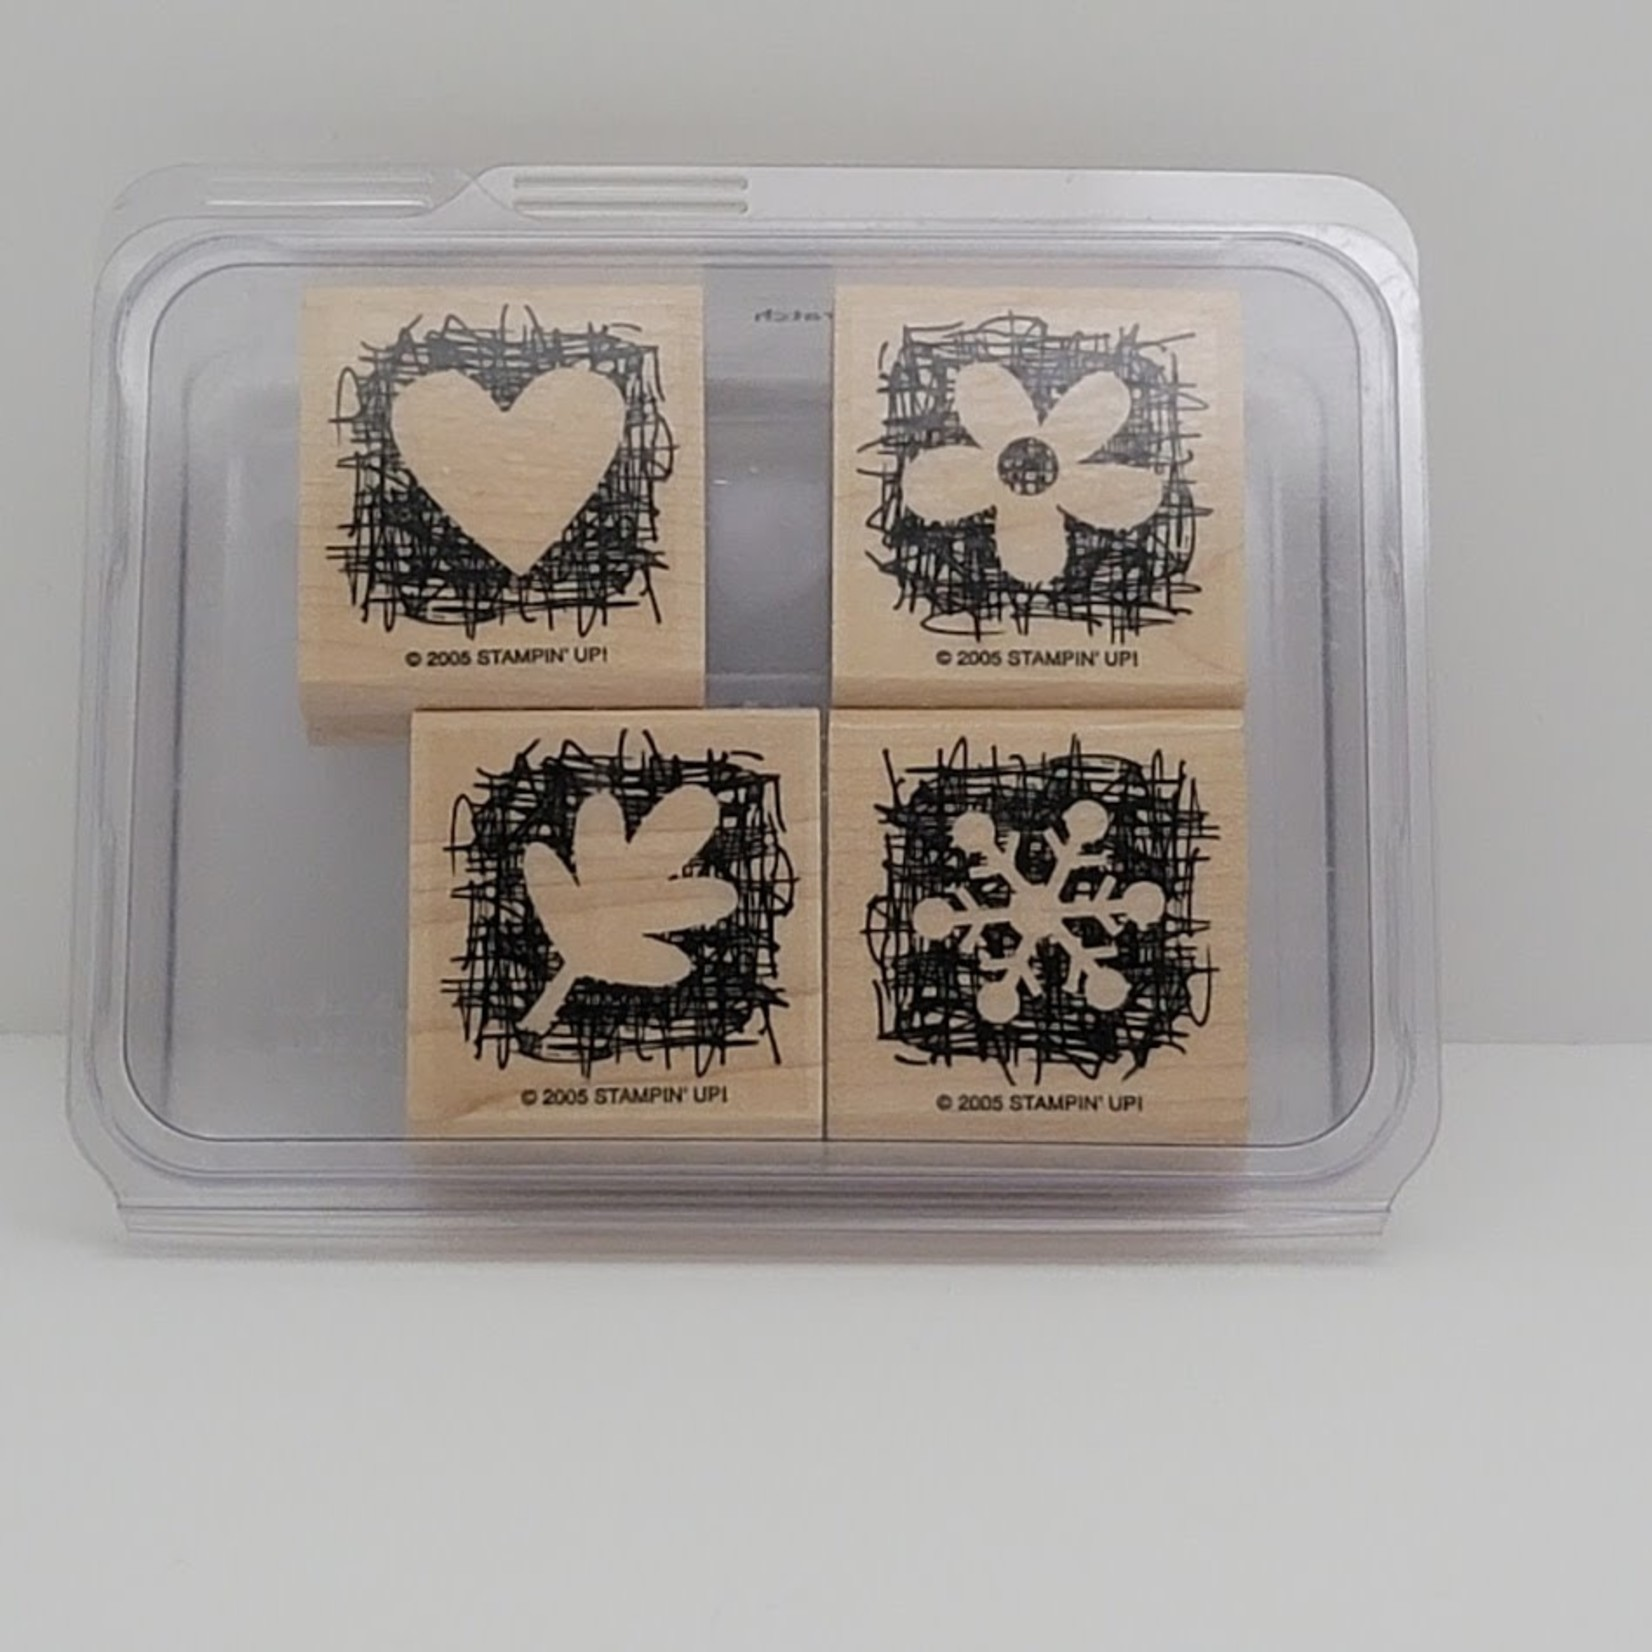 Stampin' Up Stampin' Up - Wooden Stamp Set - Made From Scratch